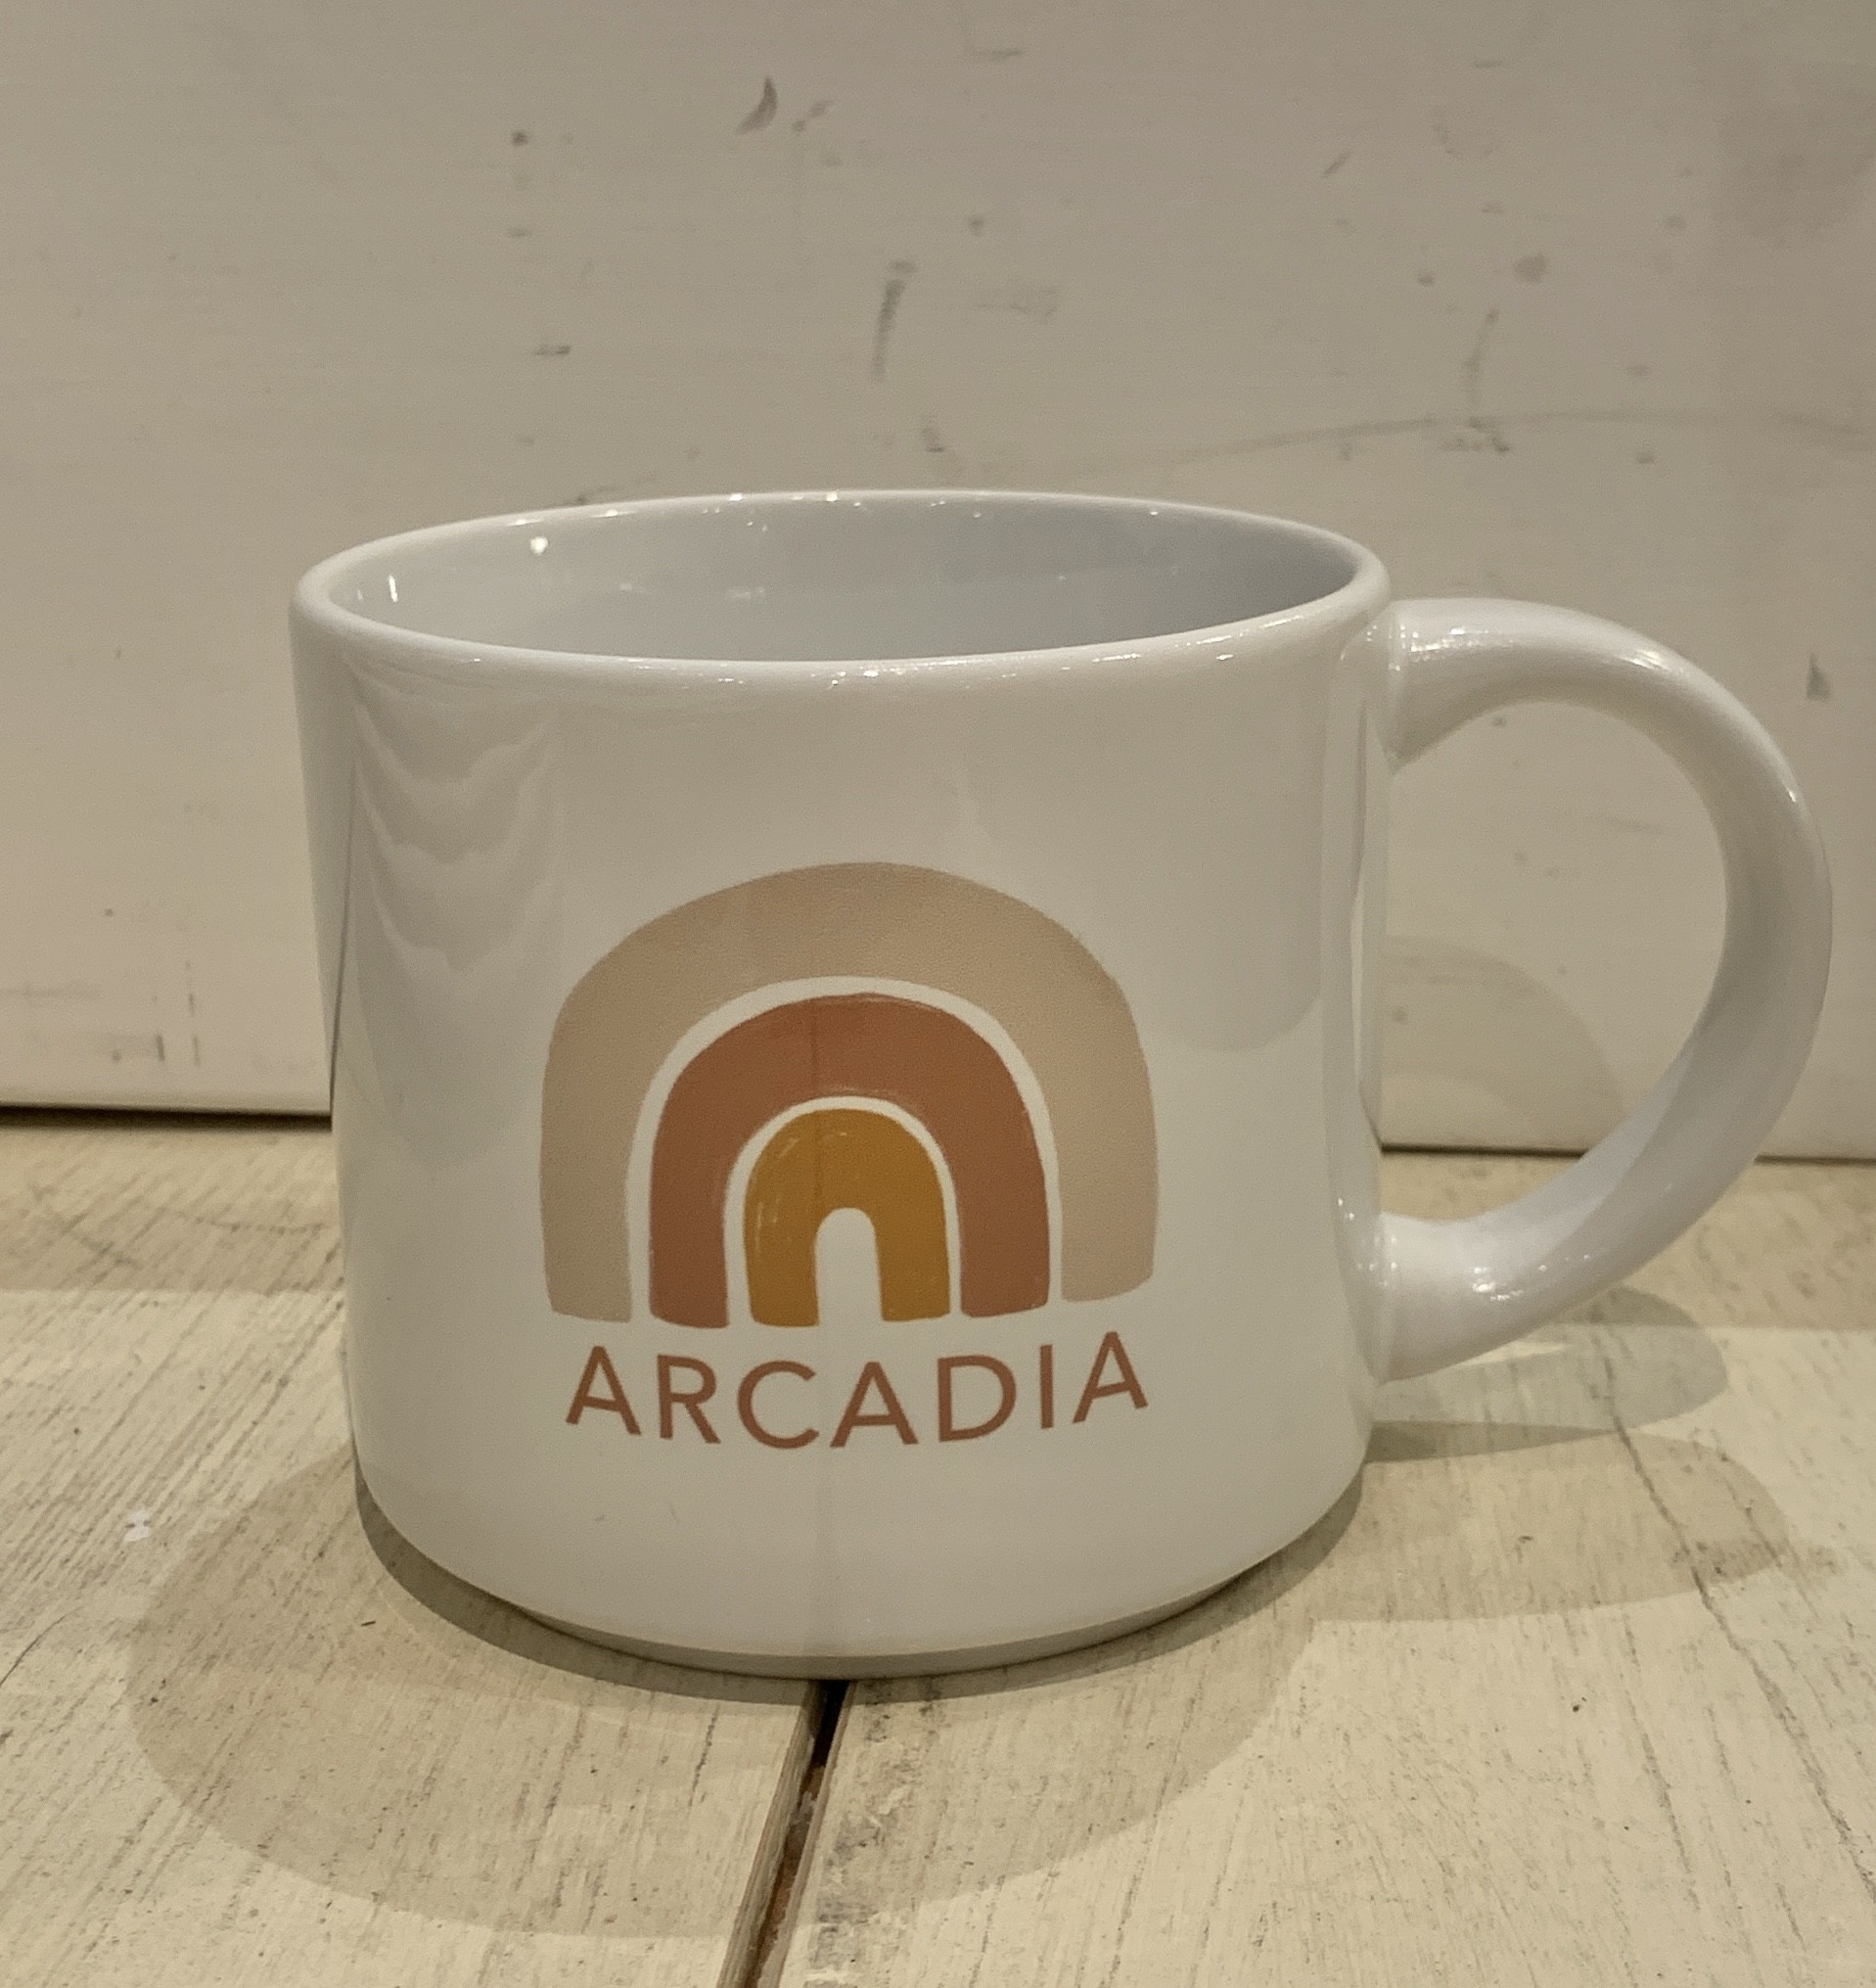 Anthony & Stork Arcadia Rainbow Mug